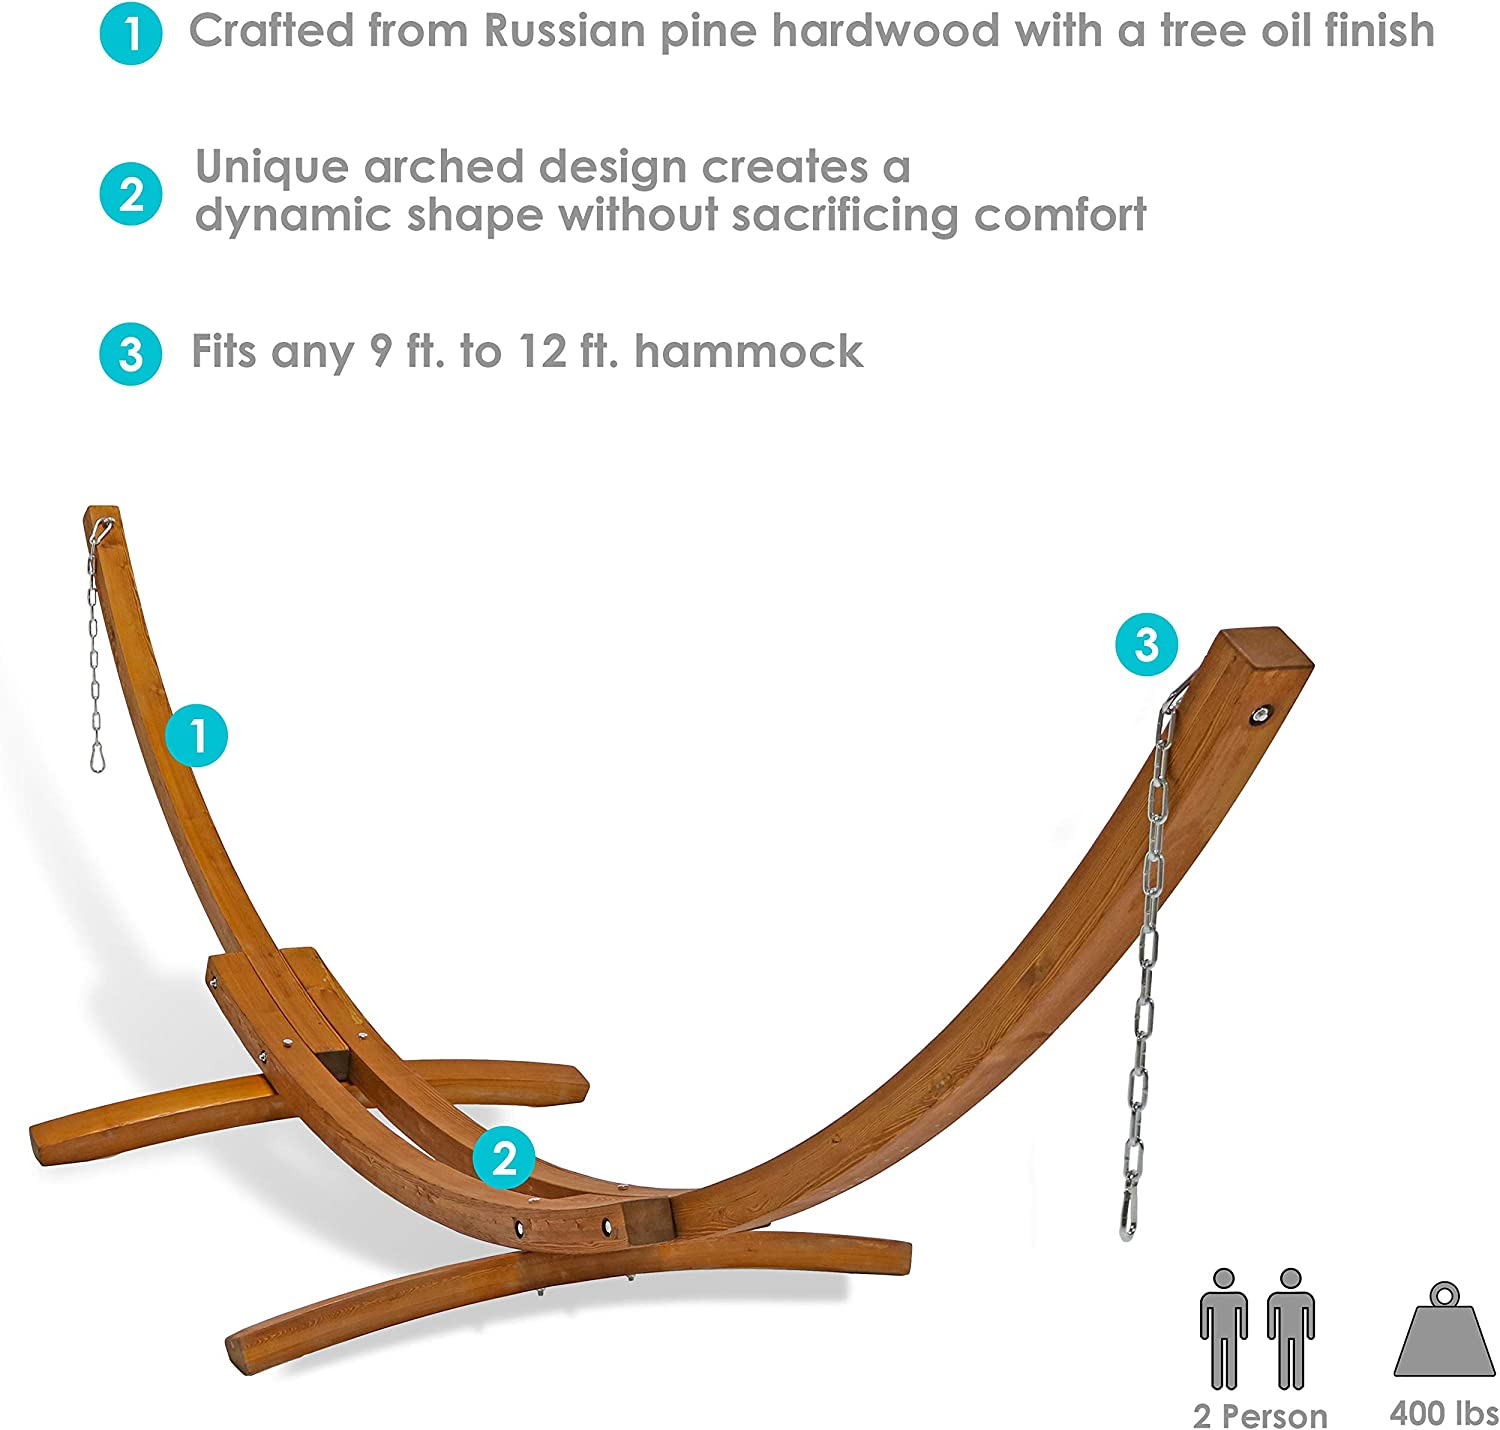 Sunnydaze Curved 13 ft Wooden Hammock Stand - 400 lbs Weight Capacity